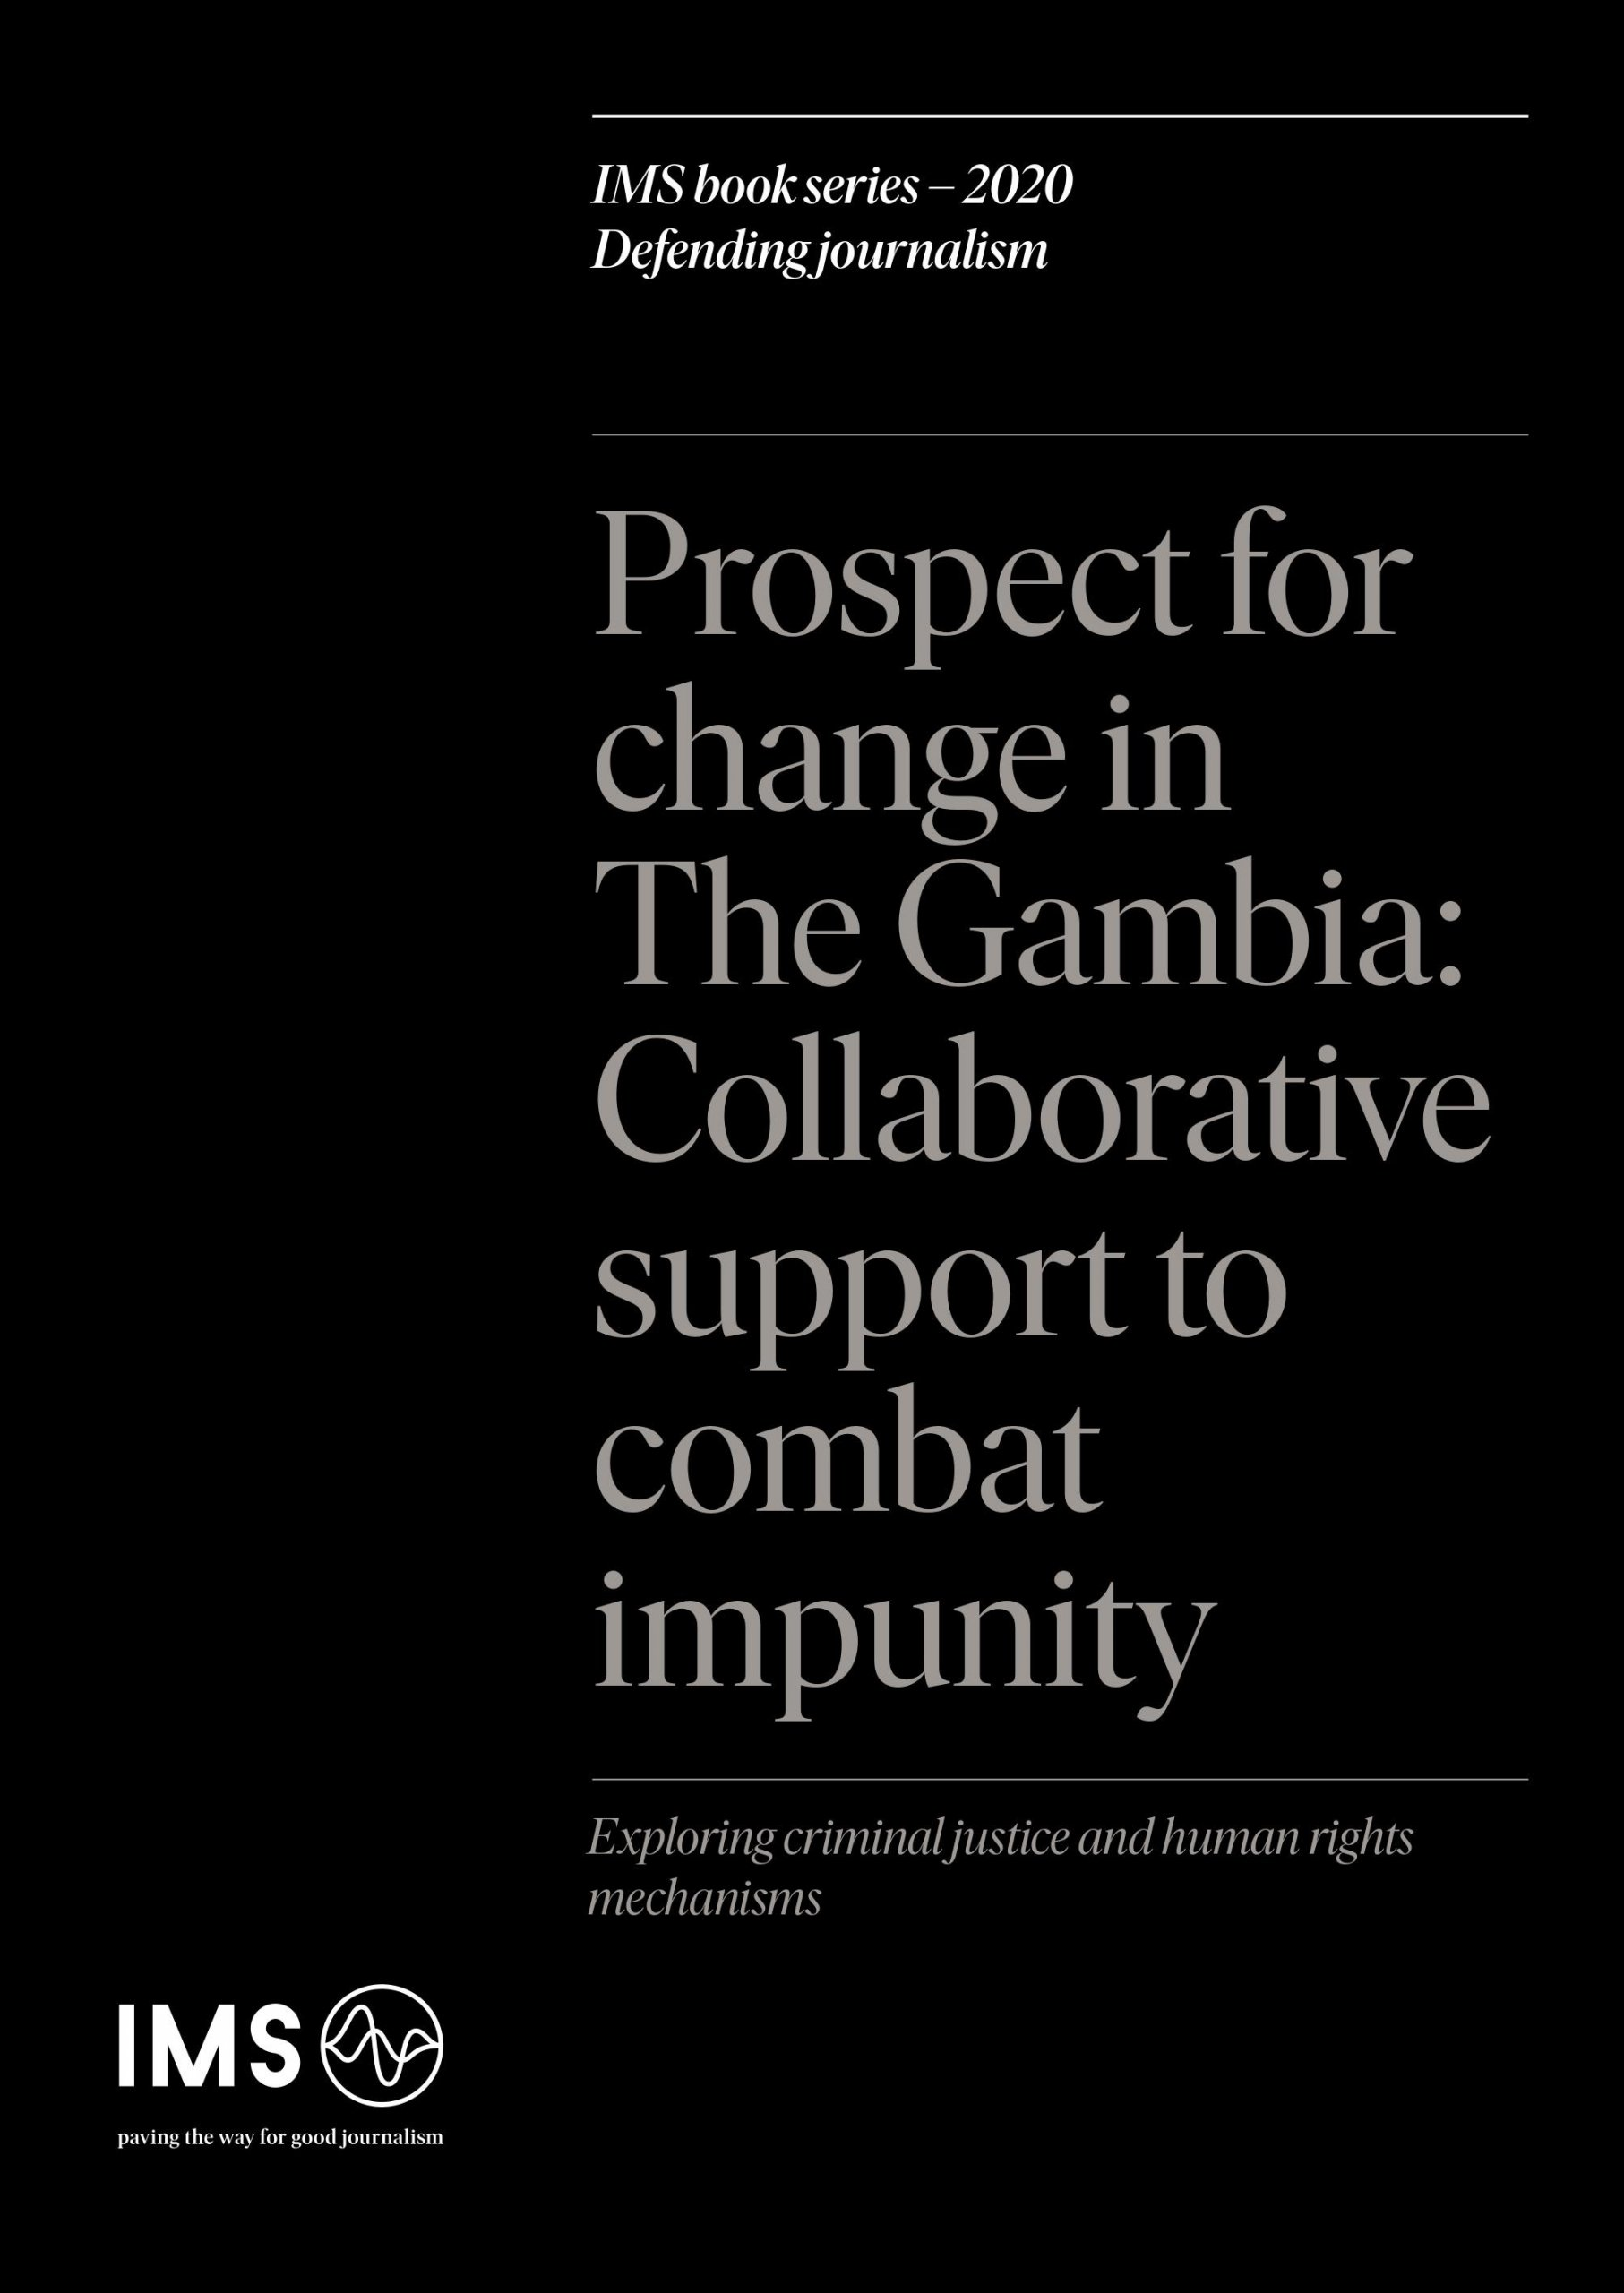 Prospect for change in The Gambia: Collaborative support to combat impunity